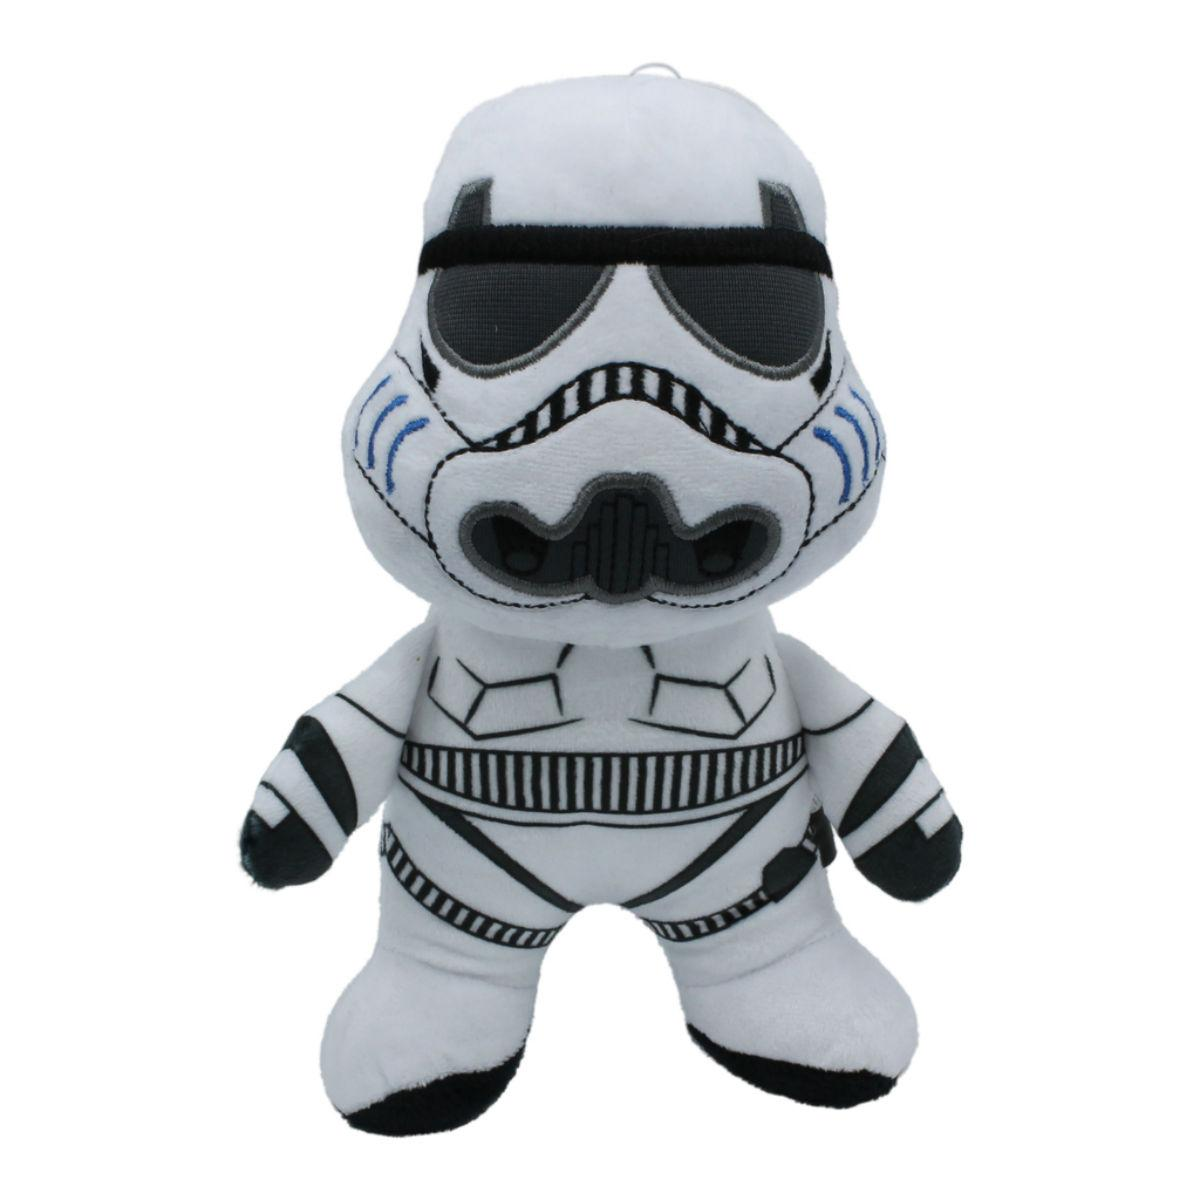 Star Wars Plush Dog Toy - Storm Trooper